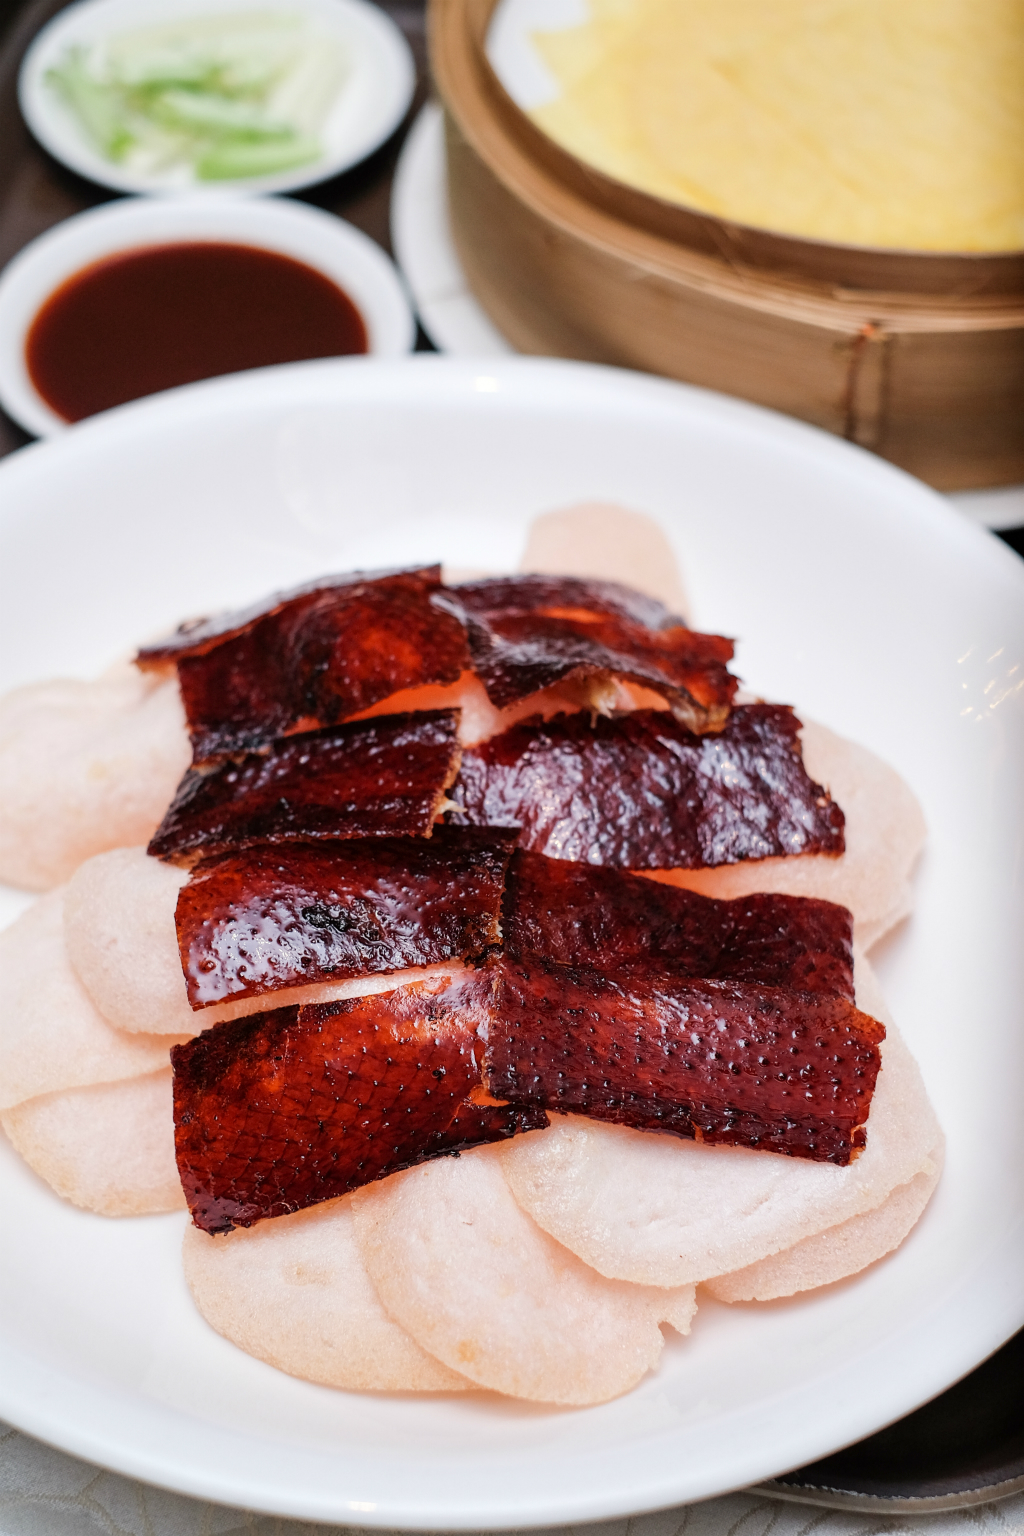 Wah Lok Cantonese Restaurant Peking duck Skin with Prawn Crackers